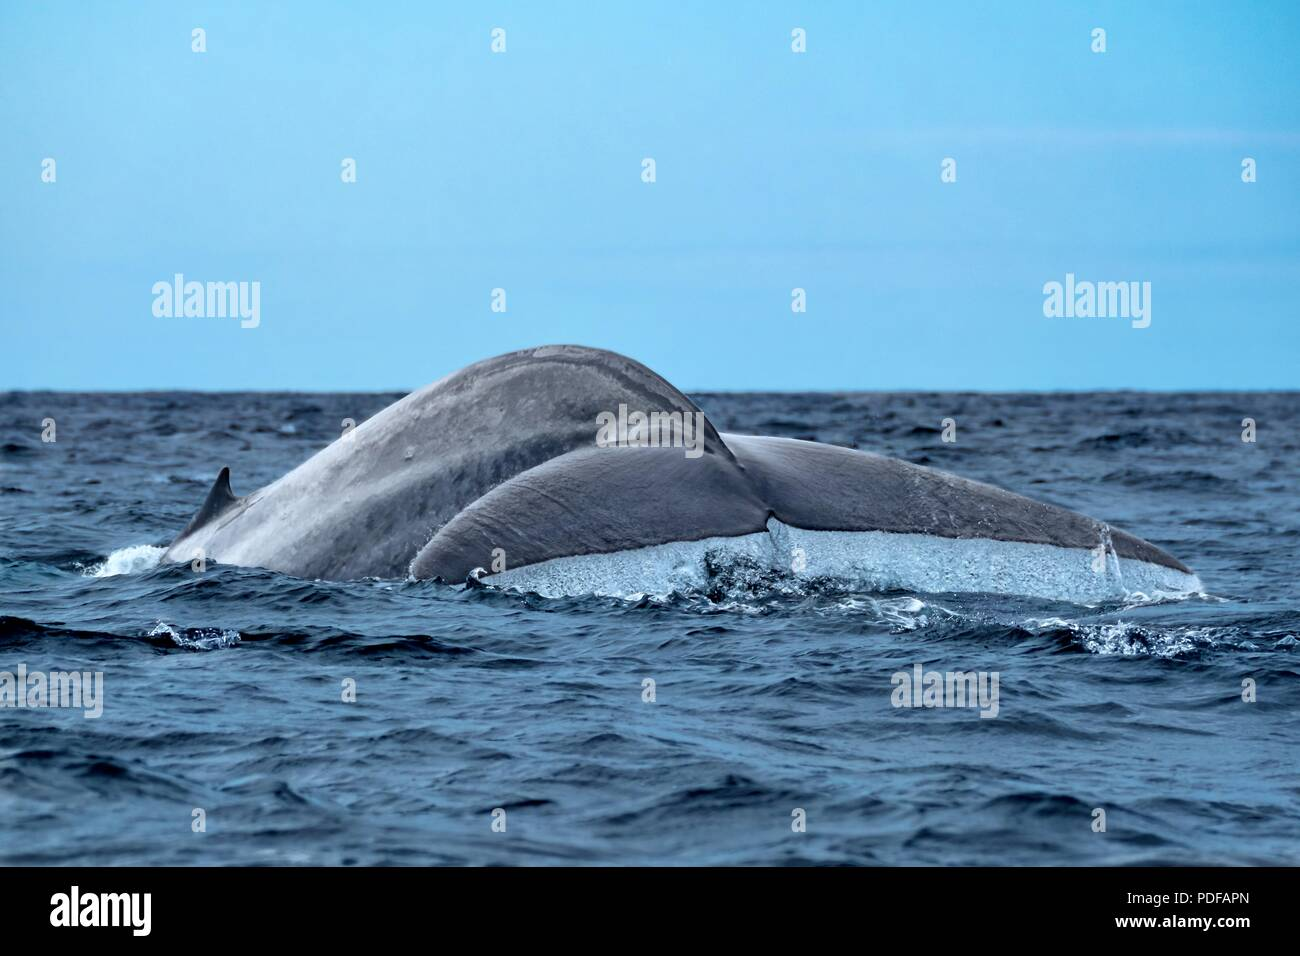 A huge blue whale showing its tail flukes as it dives - Stock Image